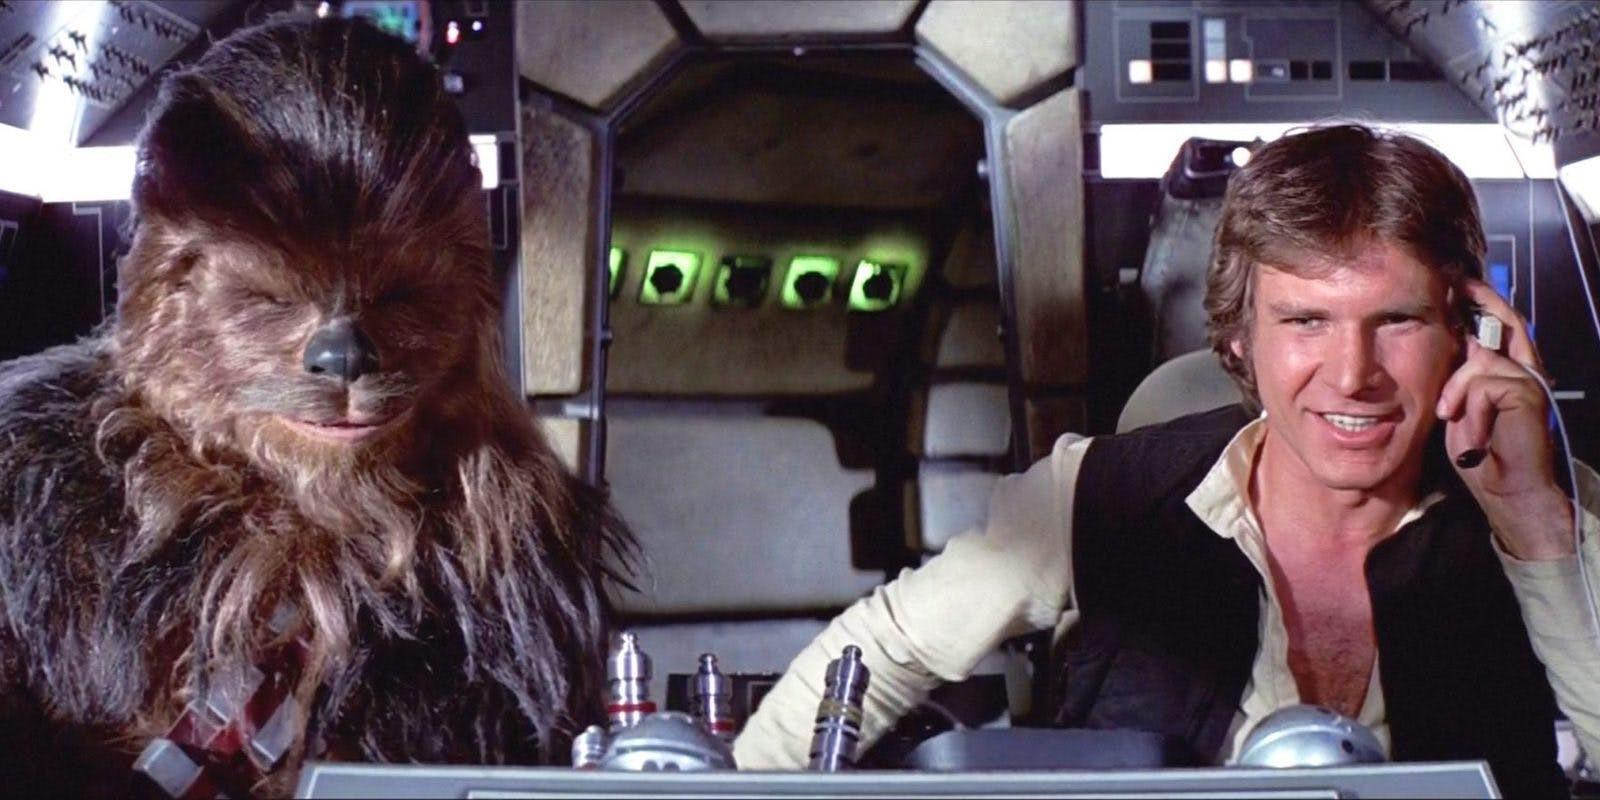 Chewbacca and Han Solo enjoying themselves in the cockpit of the Millenium Falcon.